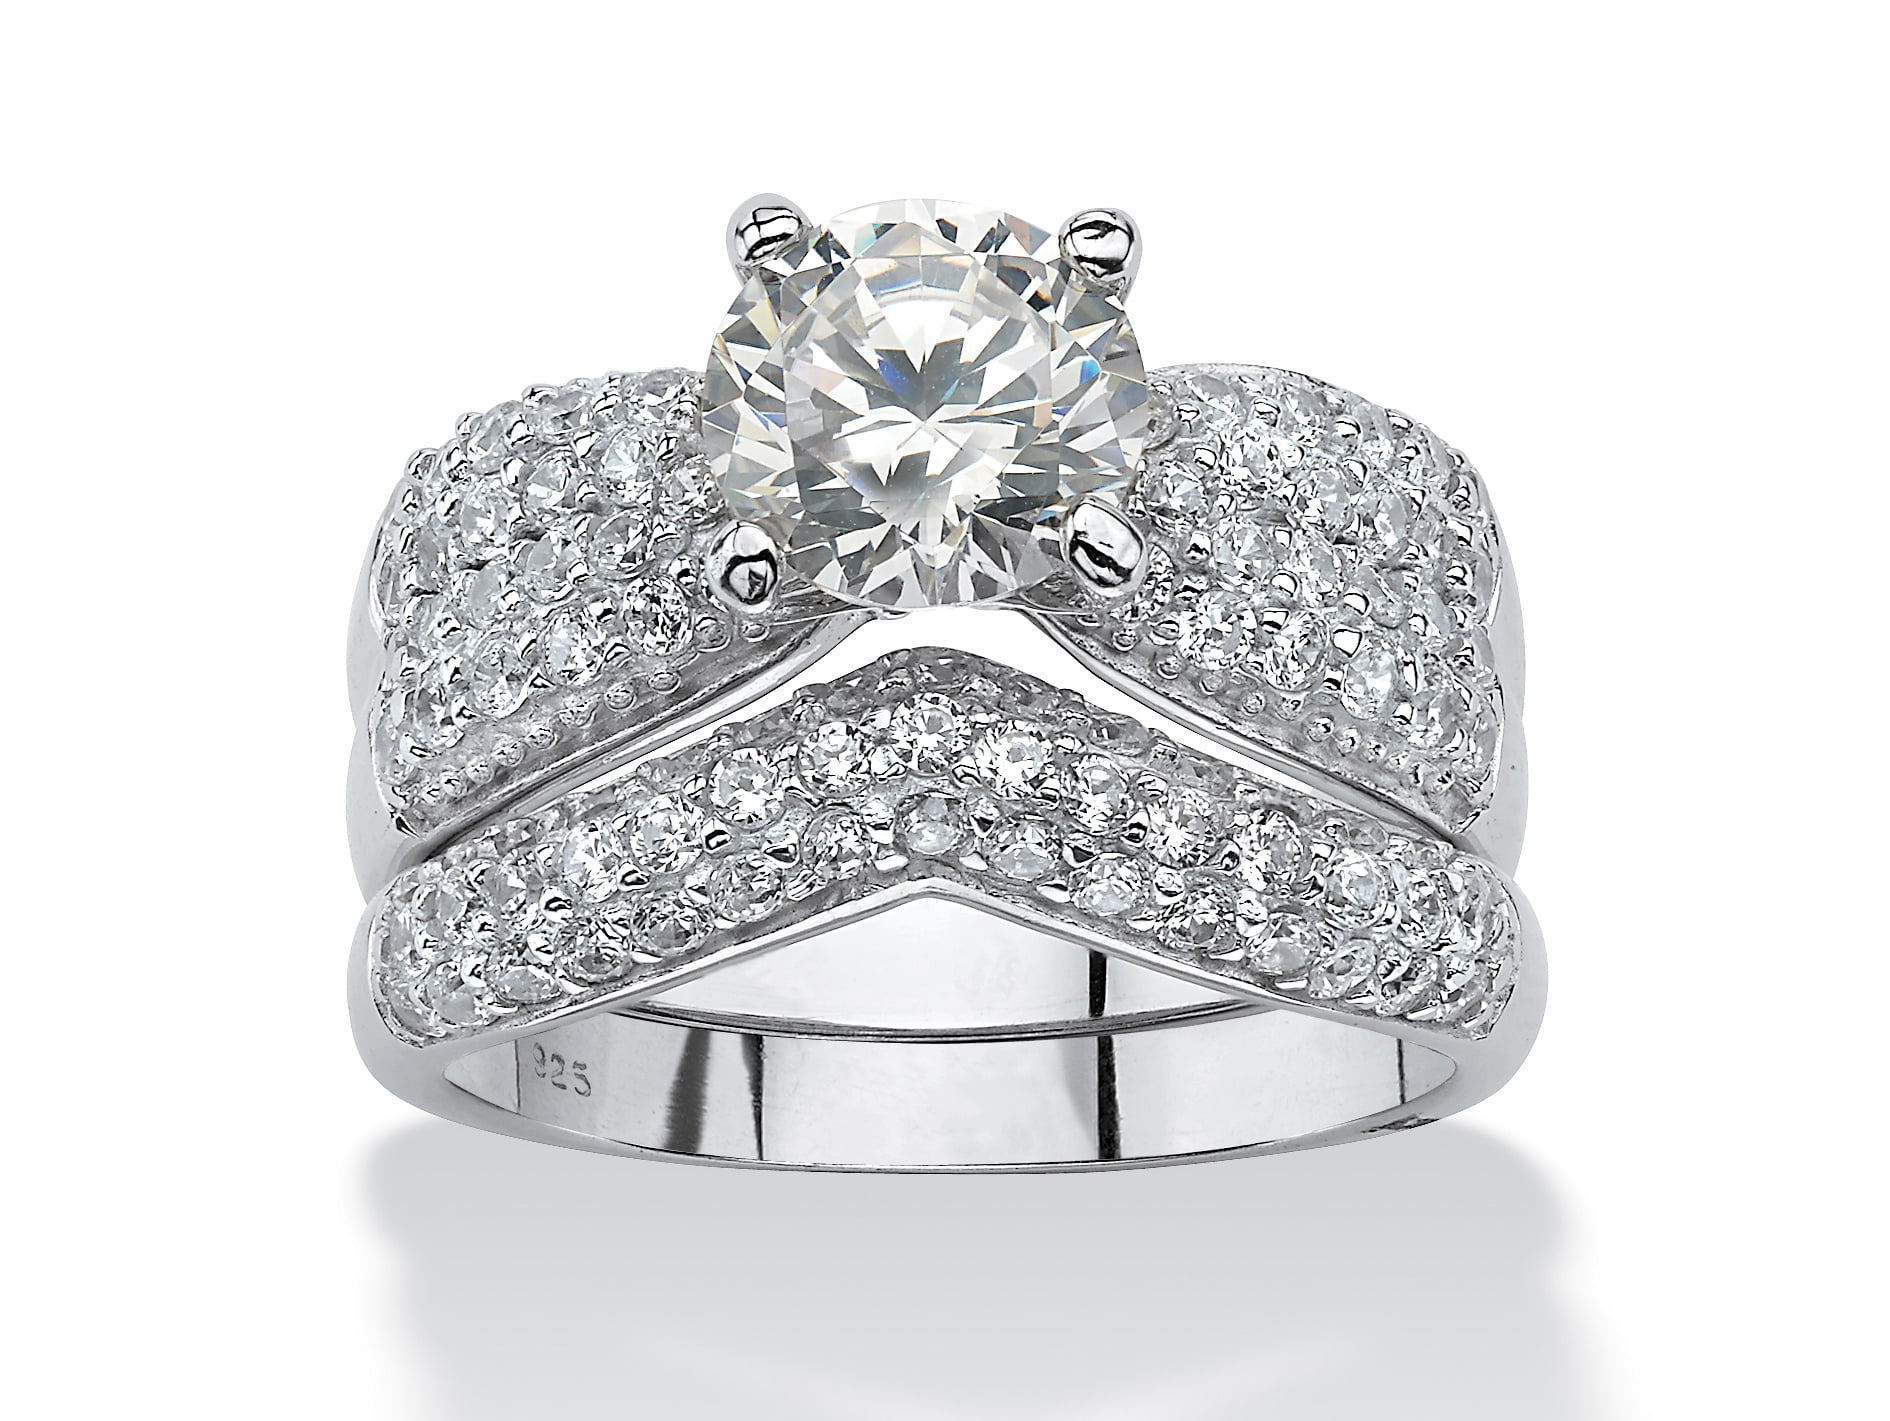 3.20 TCW Cubic Zirconia Platinum over Sterling Silver Wedding Ring Set by PalmBeach Jewelry